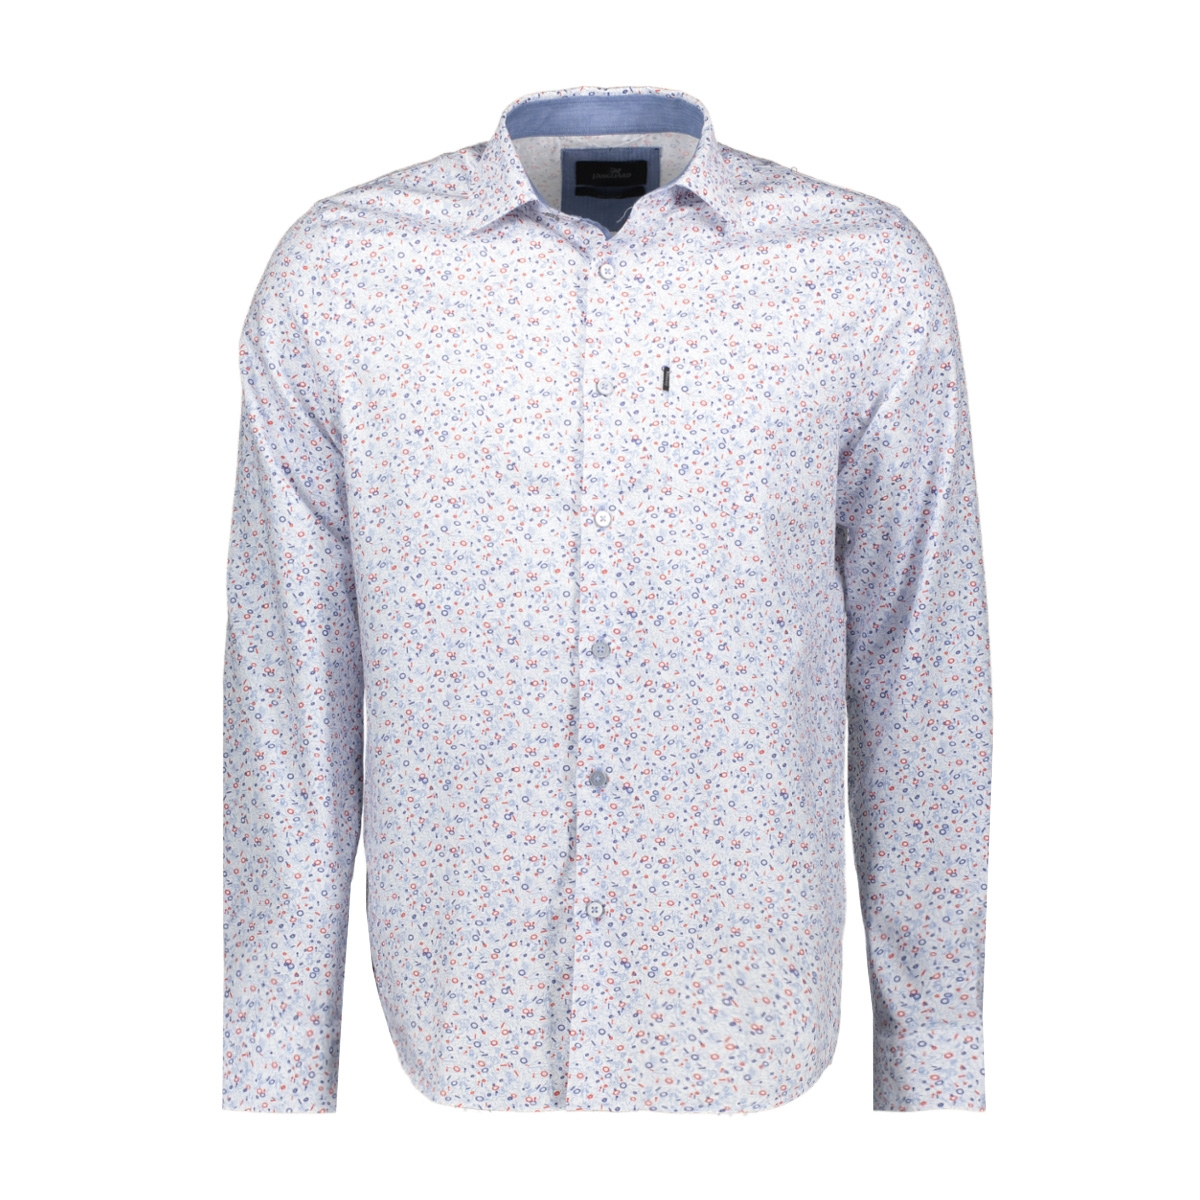 long sleeve shirt vsi201201 vanguard overhemd 7003